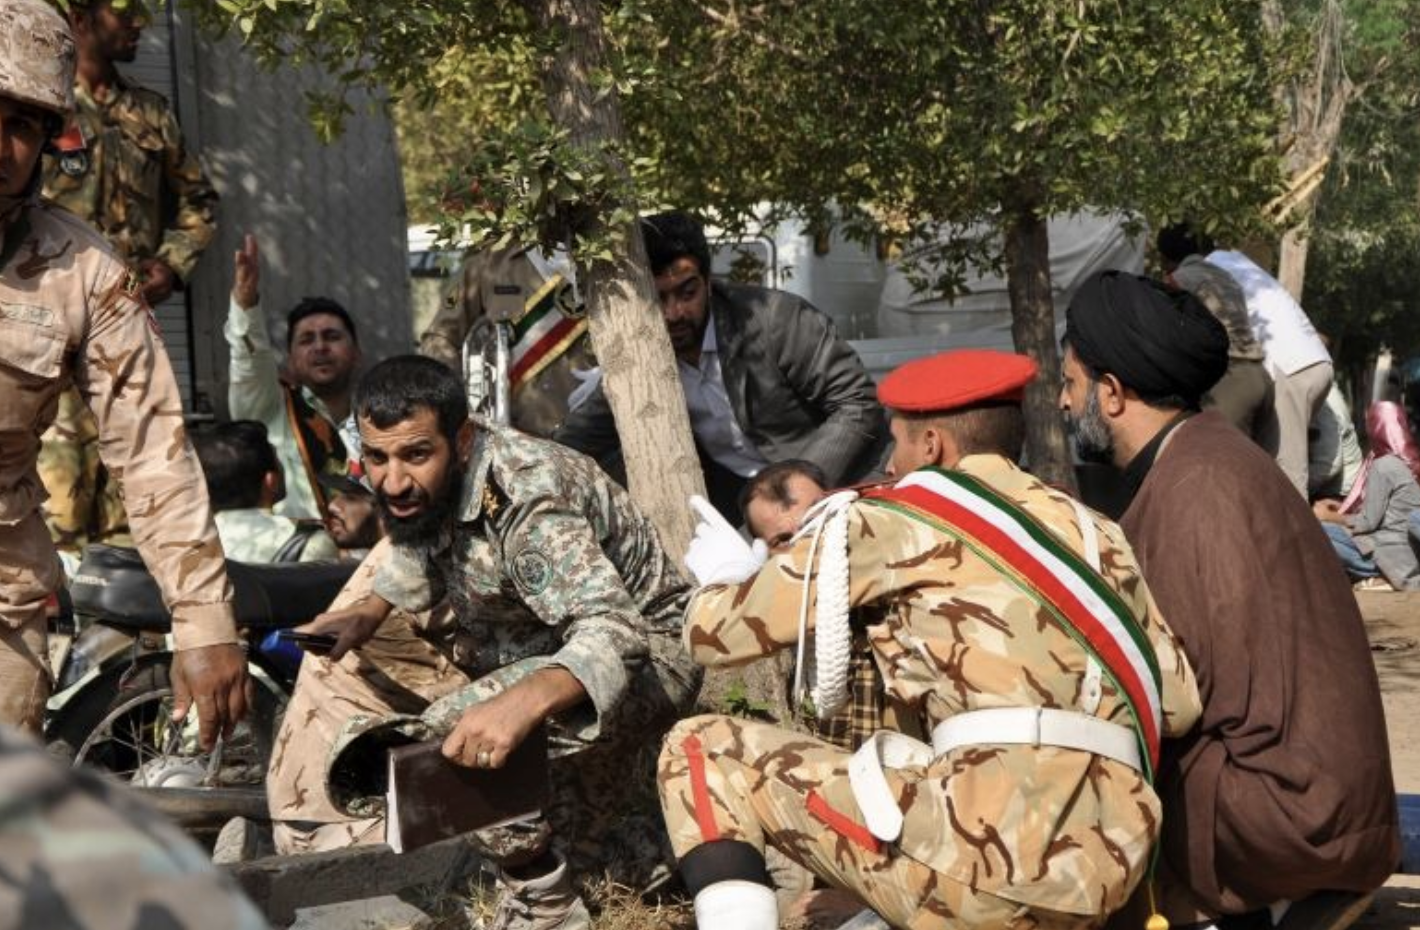 Iranian armed forces members and civilians take shelter during Saturday's attack on Iran's military parade.  Photo : Behrad Ghasemi/Associated Press